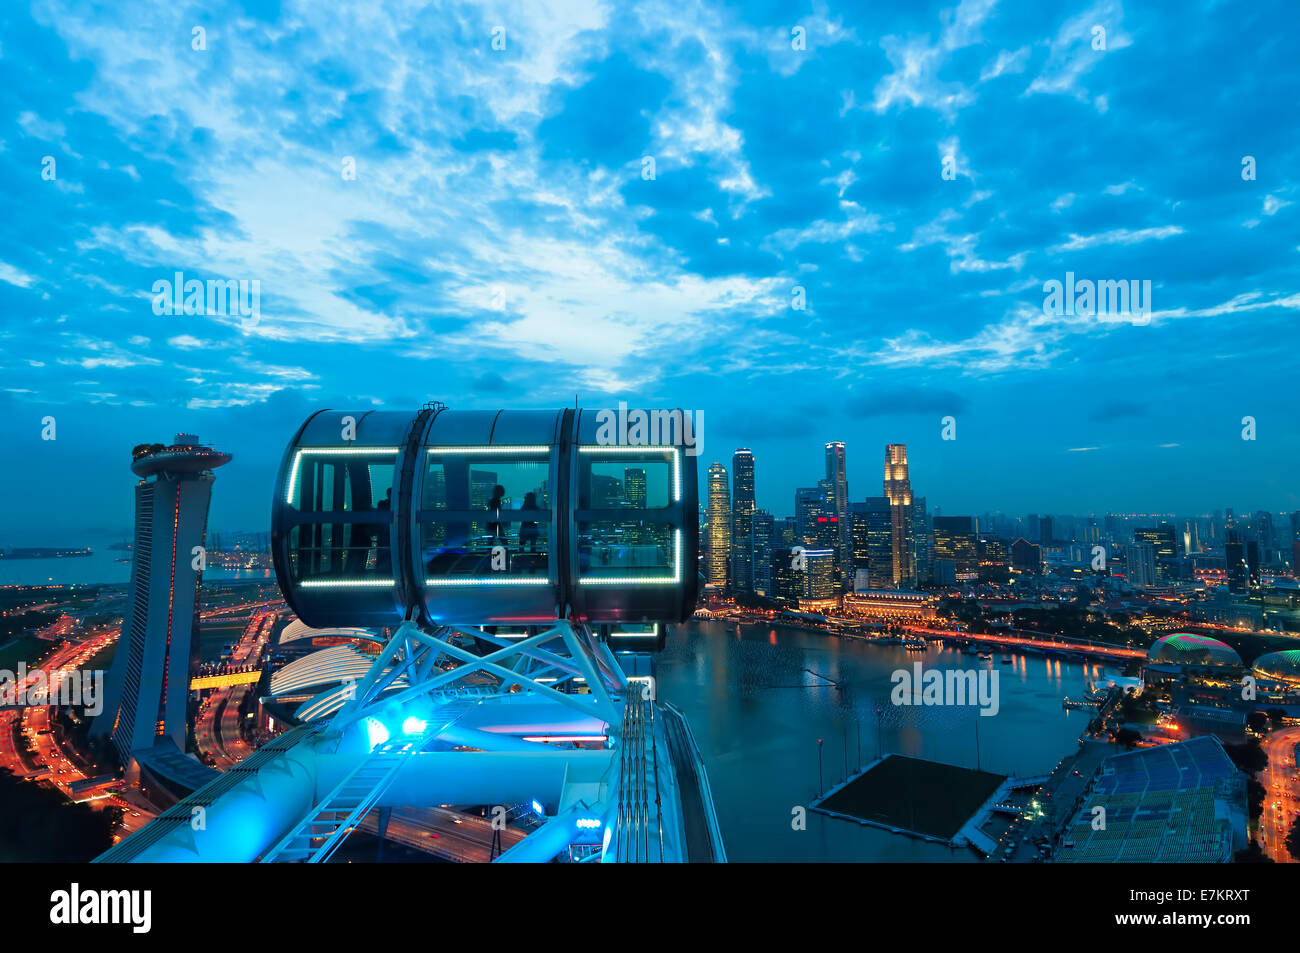 Looking out over Singapore at sunset from the Singapore Flyer. - Stock Image